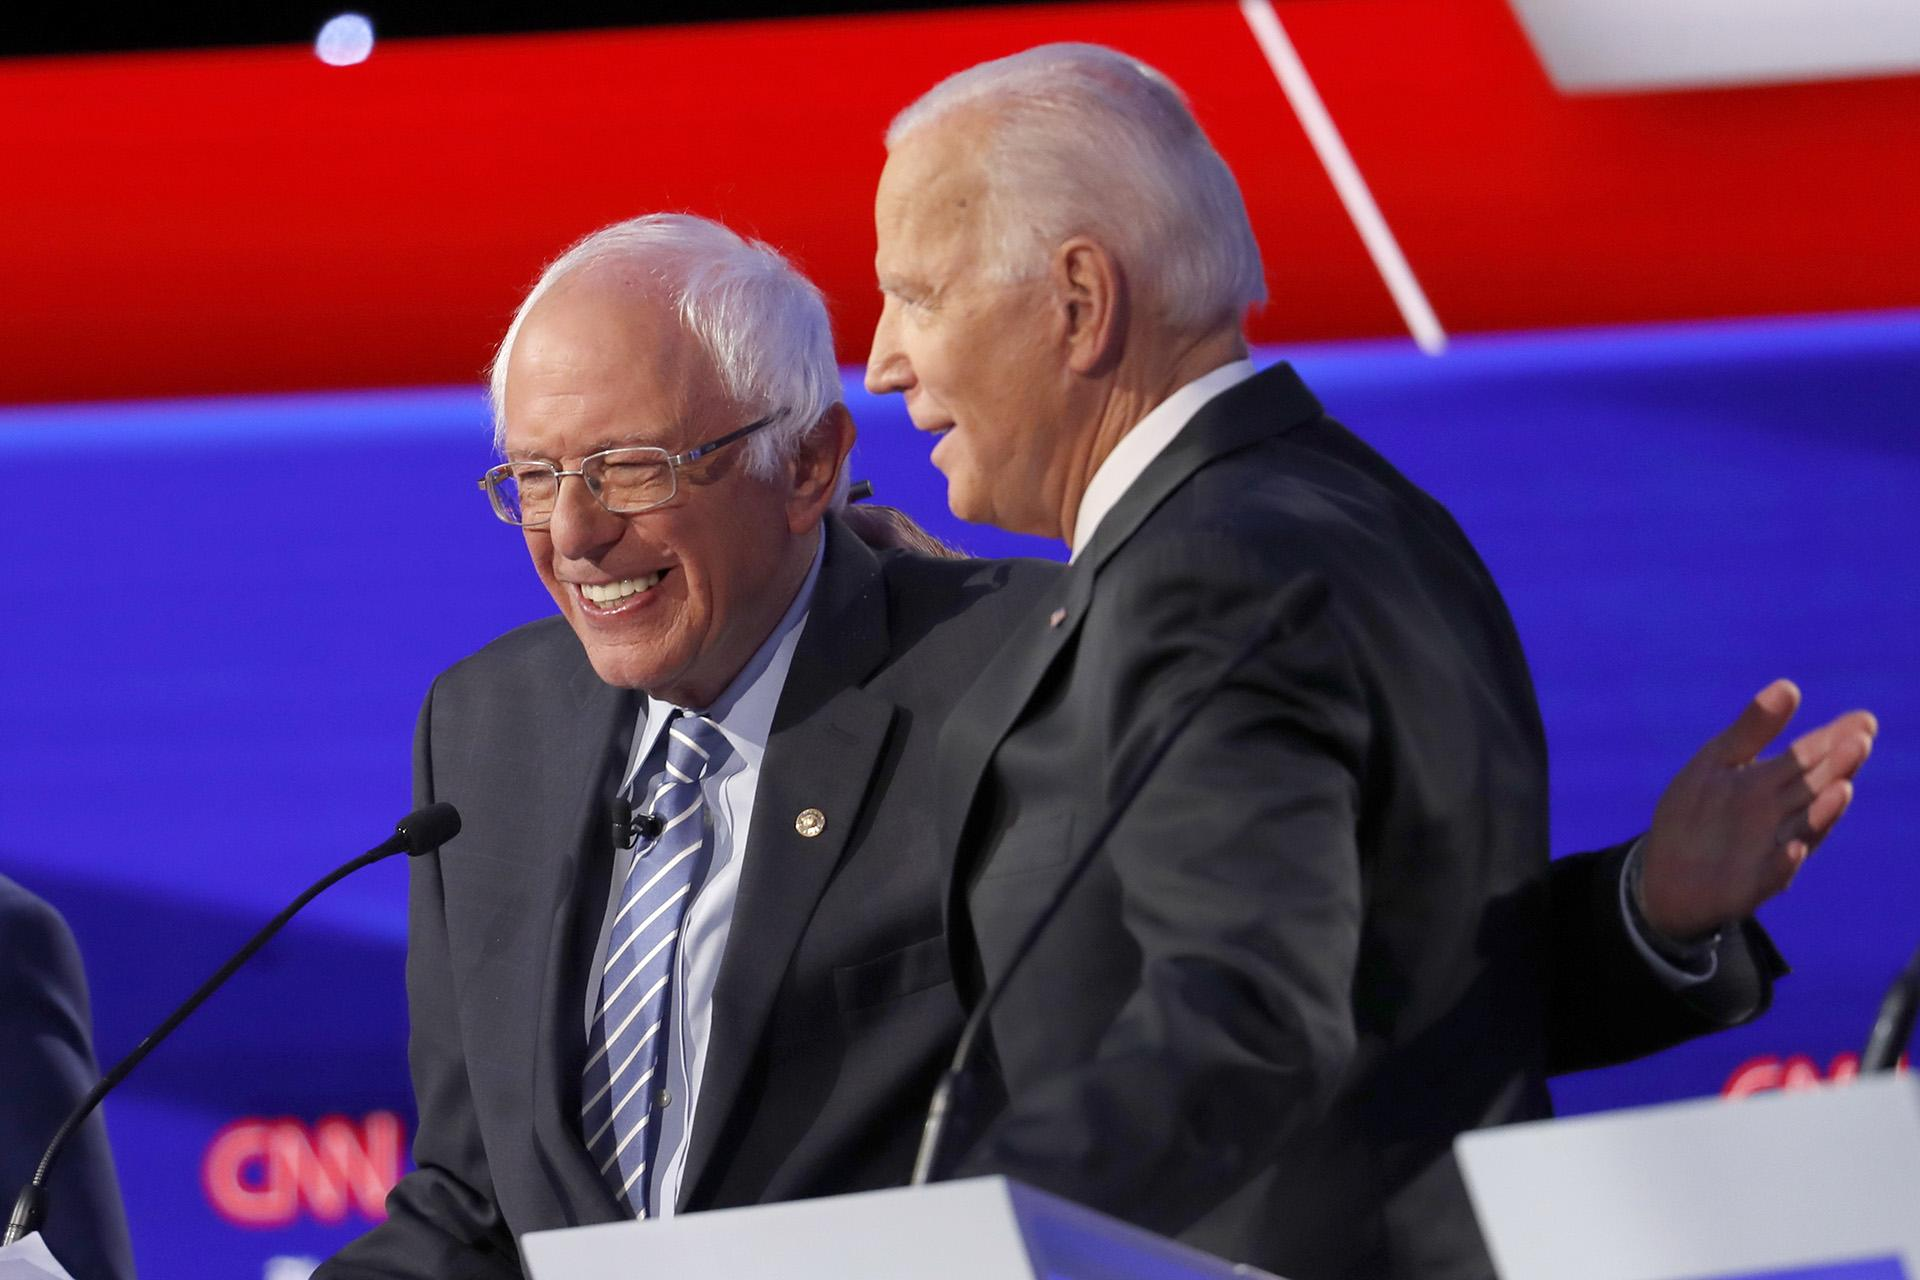 Democratic presidential candidate Sen. Bernie Sanders, I-Vt., left, and former Vice President Joe Biden hug during a Democratic presidential primary debate hosted by CNN/New York Times at Otterbein University, Tuesday, Oct. 15, 2019, in Westerville, Ohio. (AP Photo / John Minchillo)